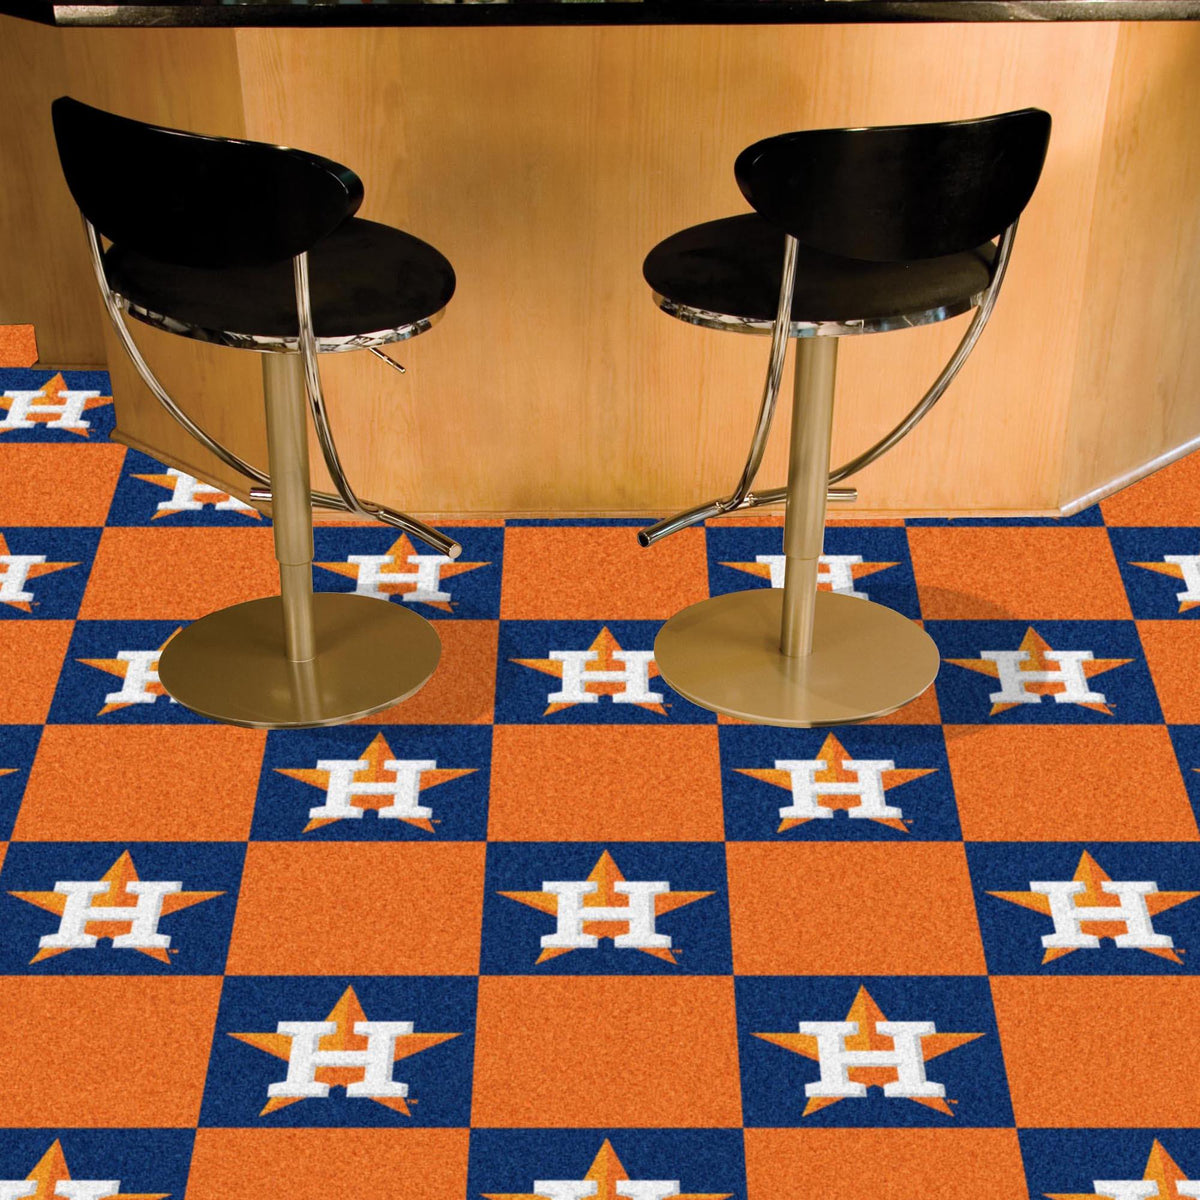 MLB - Team Carpet Tiles MLB Mats, Carpet Tile Flooring, Team Carpet Tiles, MLB, Home Fan Mats Houston Astros